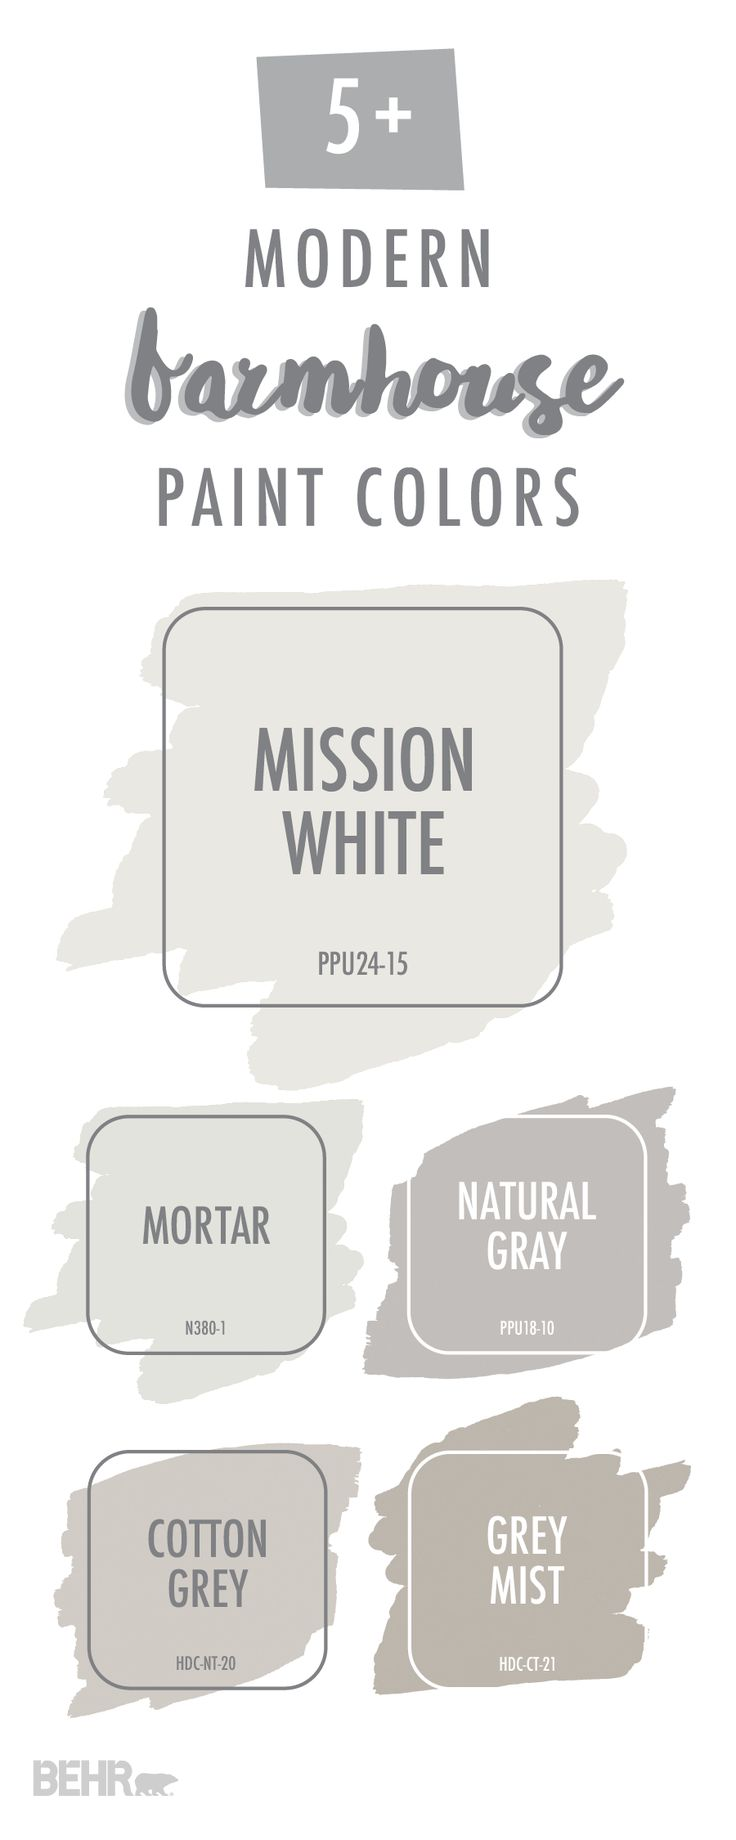 If you're thinking of remodeling your home, why not check out these modern farmhouse paint colors for a little design inspiration. Neutral shades like Mission White, Natural Gray, and Cotton Grey offer a timeless color palette that you can enjoy in your home for years to come. Click here to see how you can use these stylish interior paint colors in your home.